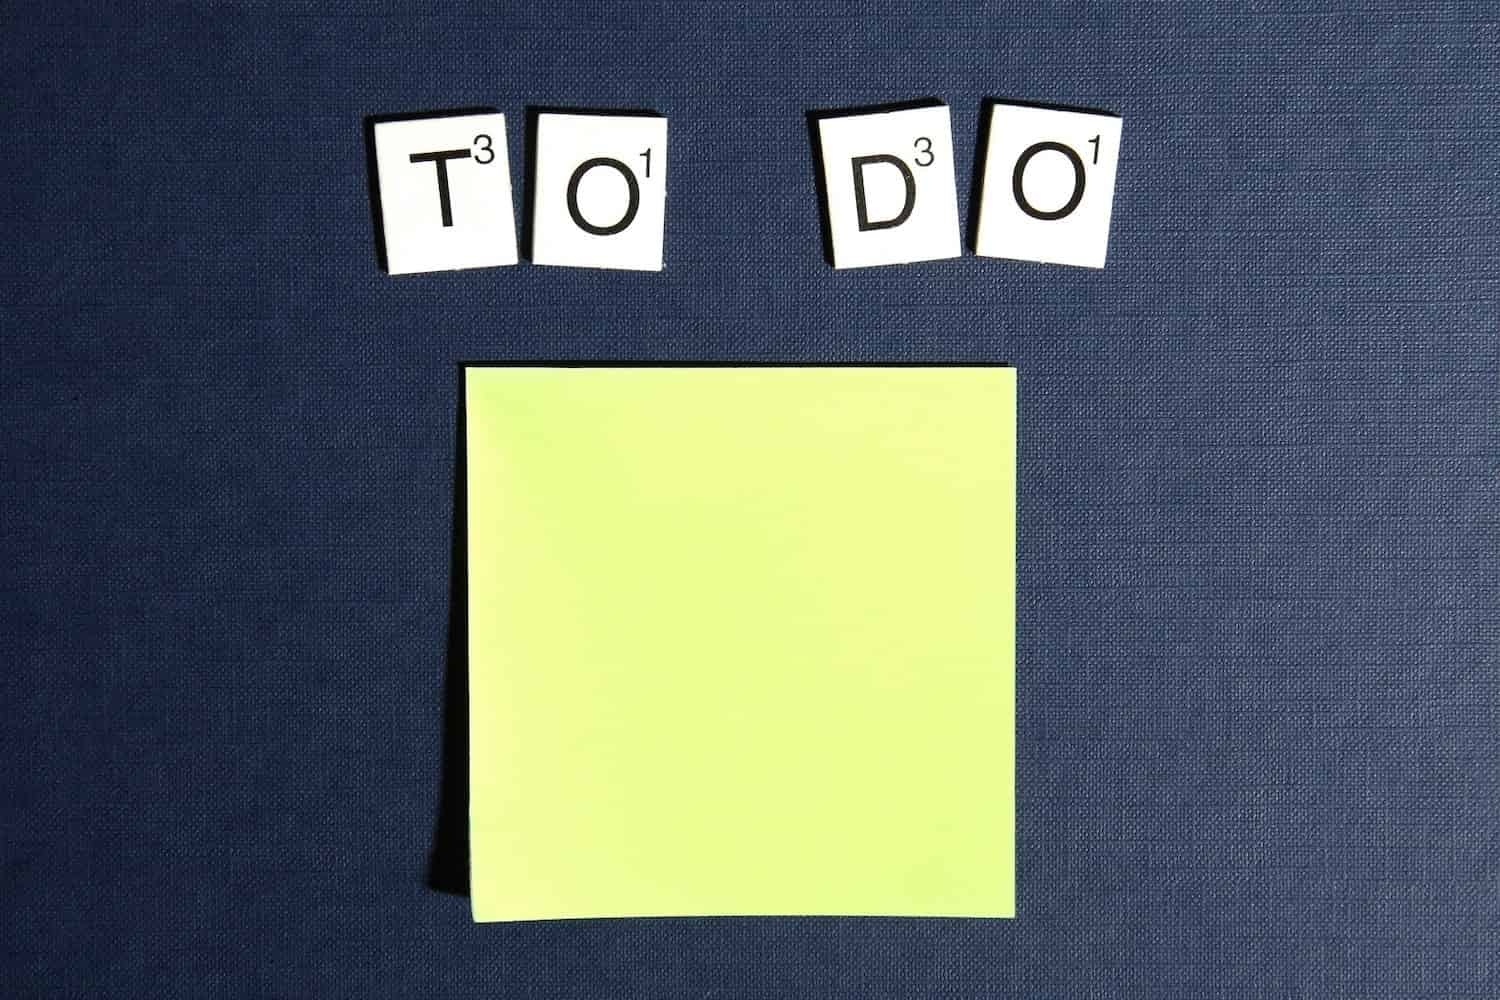 """To Do"" spelled above a sticky note"